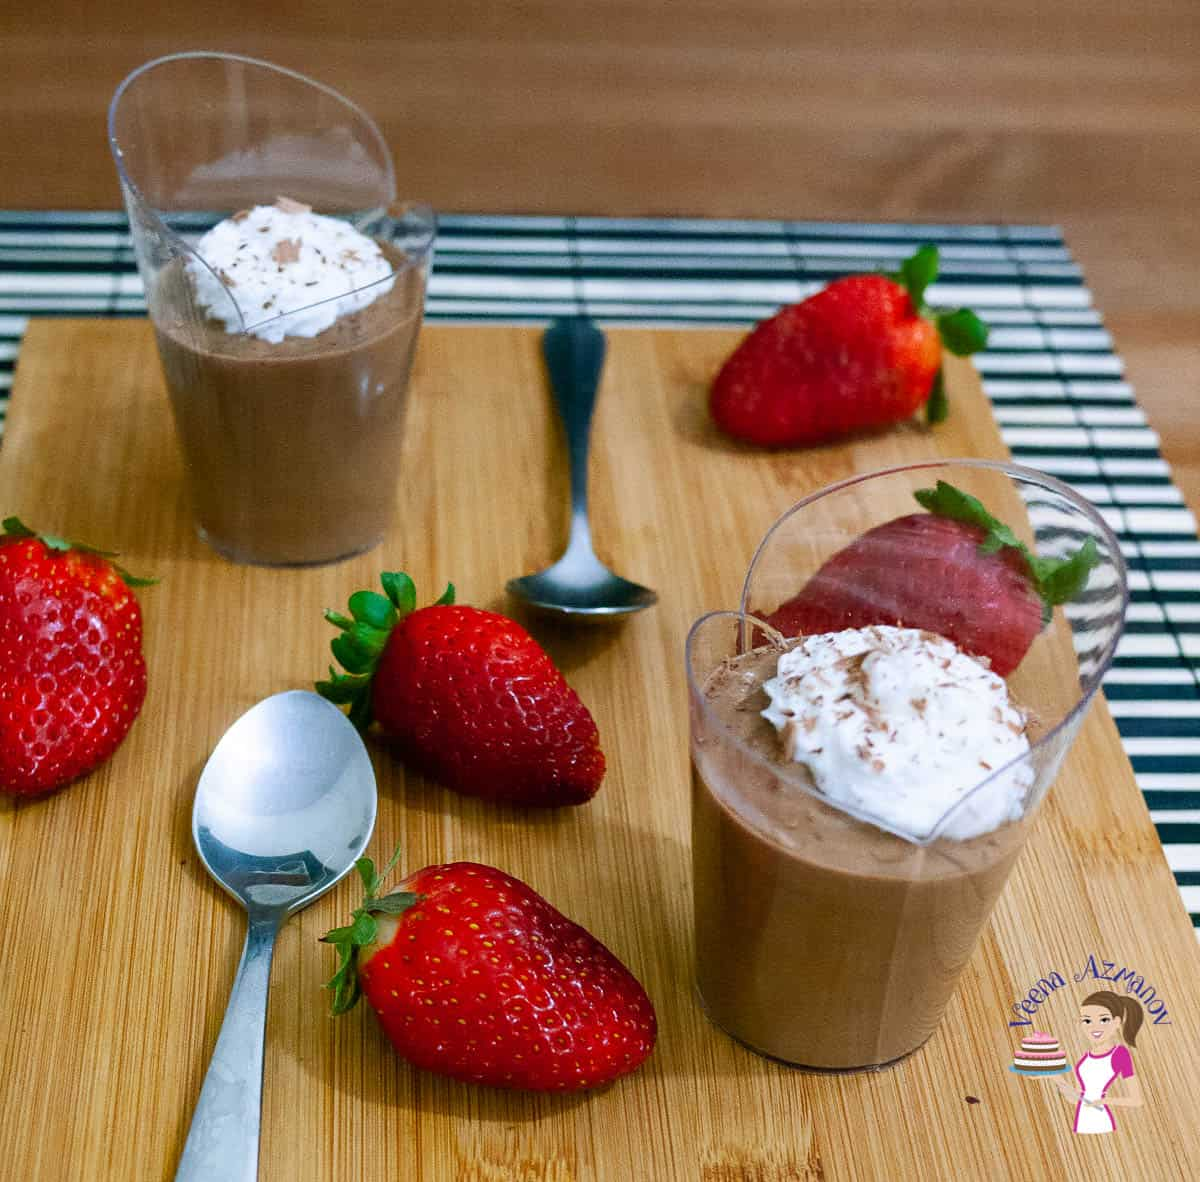 Chocolate mousse and strawberries on a wooden board